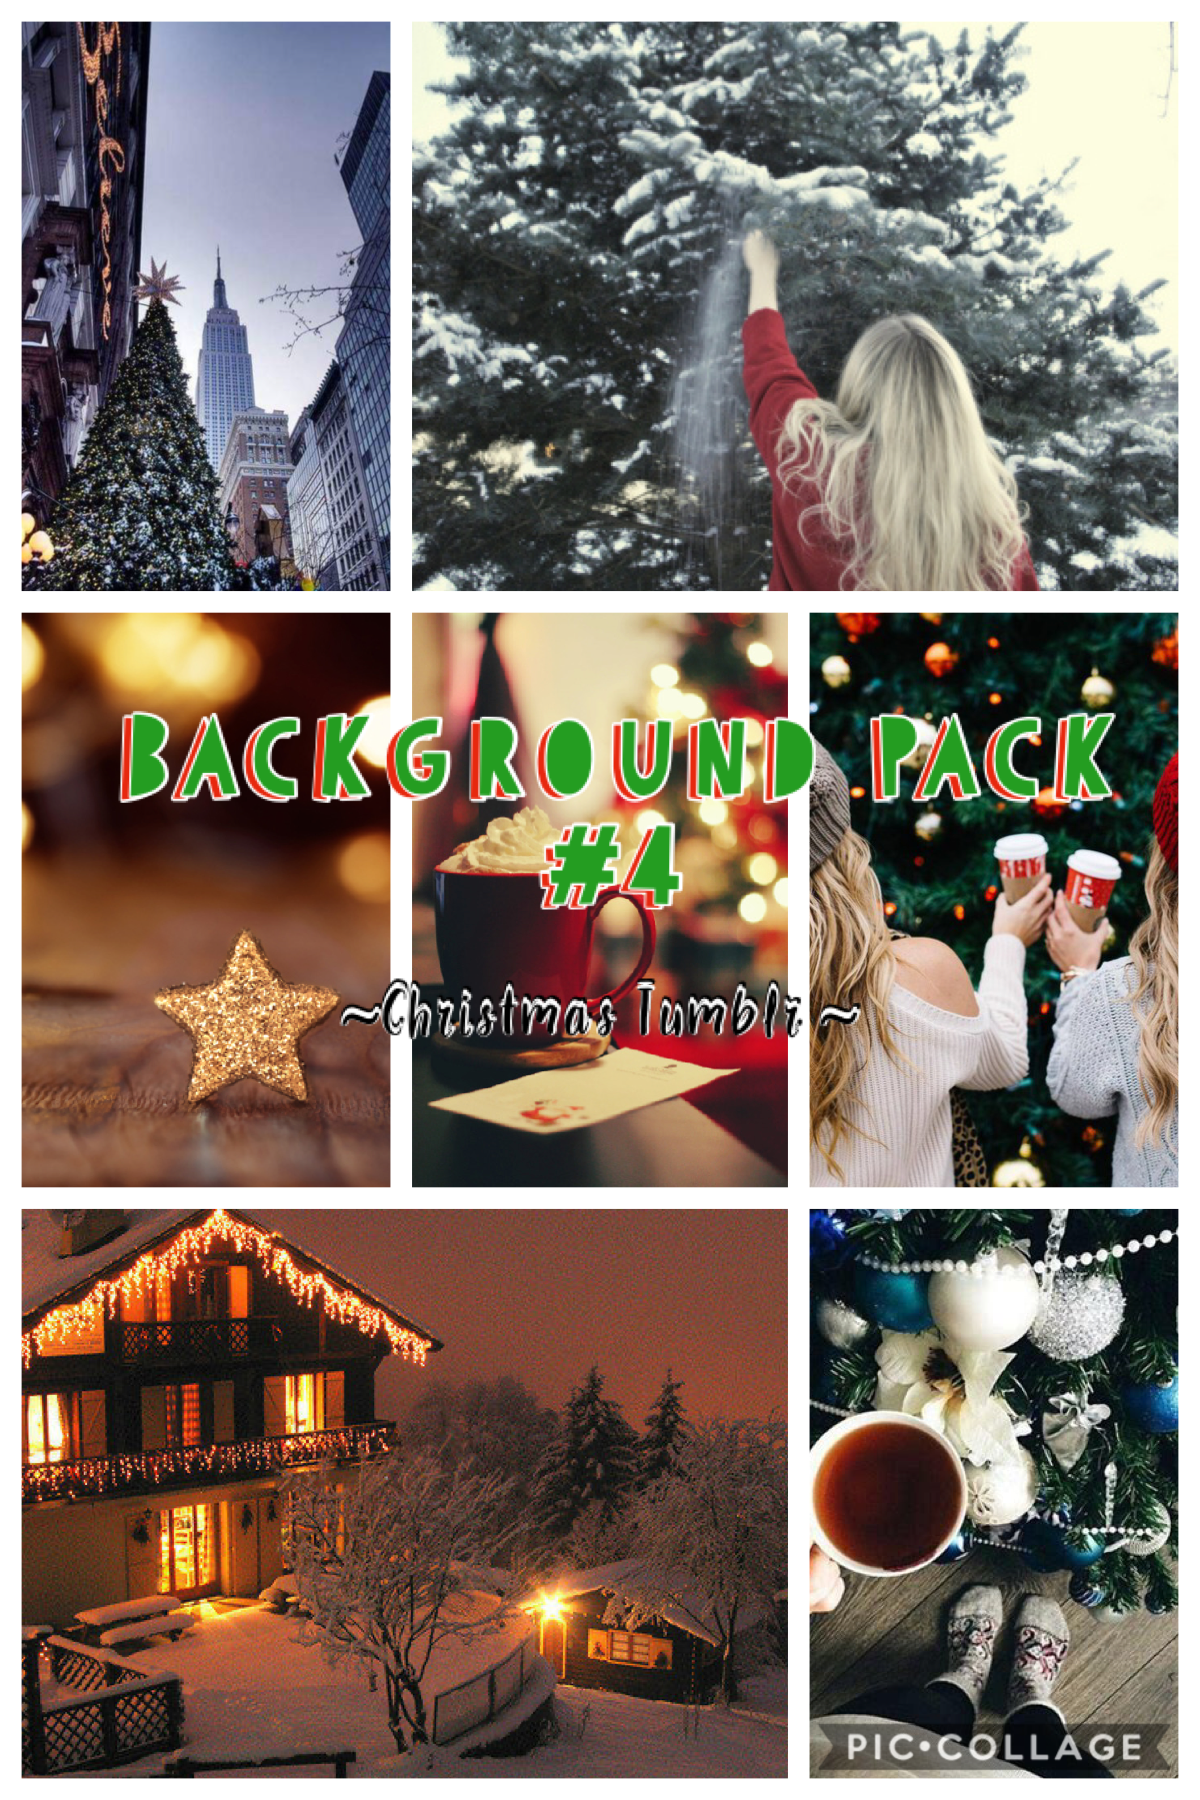 Enjoy this Christmas themed background pack!! Please use credit if you're gonna use them!🔔❄️🎄😆 11 days till Christmas y'all!! How exciting is that??!??🤩🤯 Christmas contest coming soon!